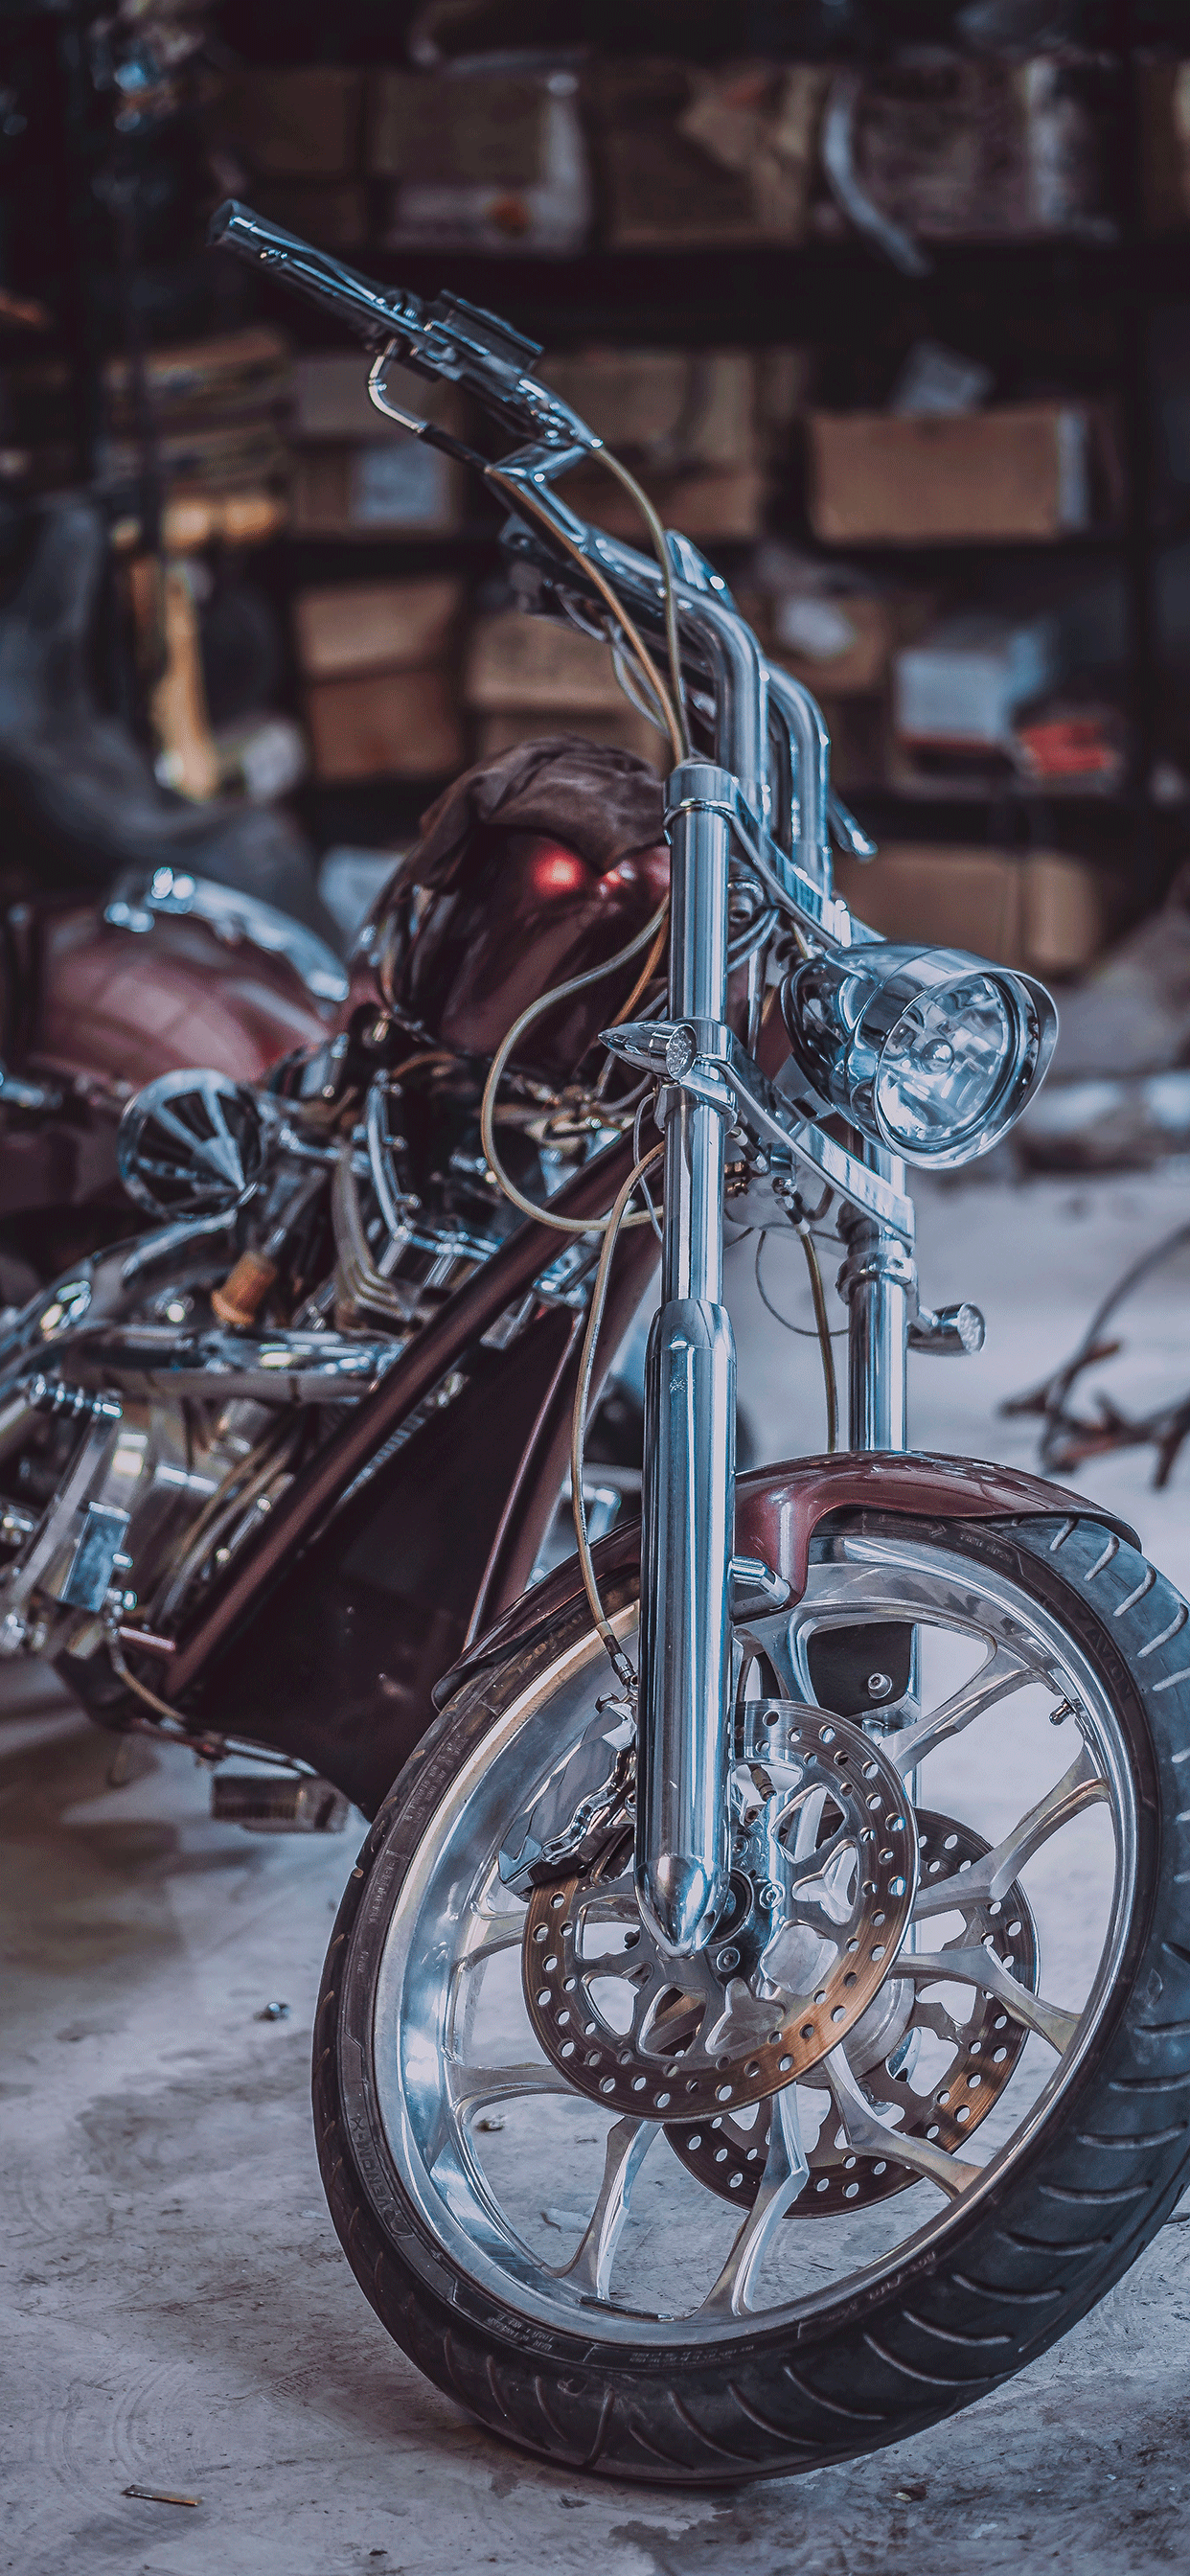 iPhone wallpaper harley davidson purple Harley Davidson